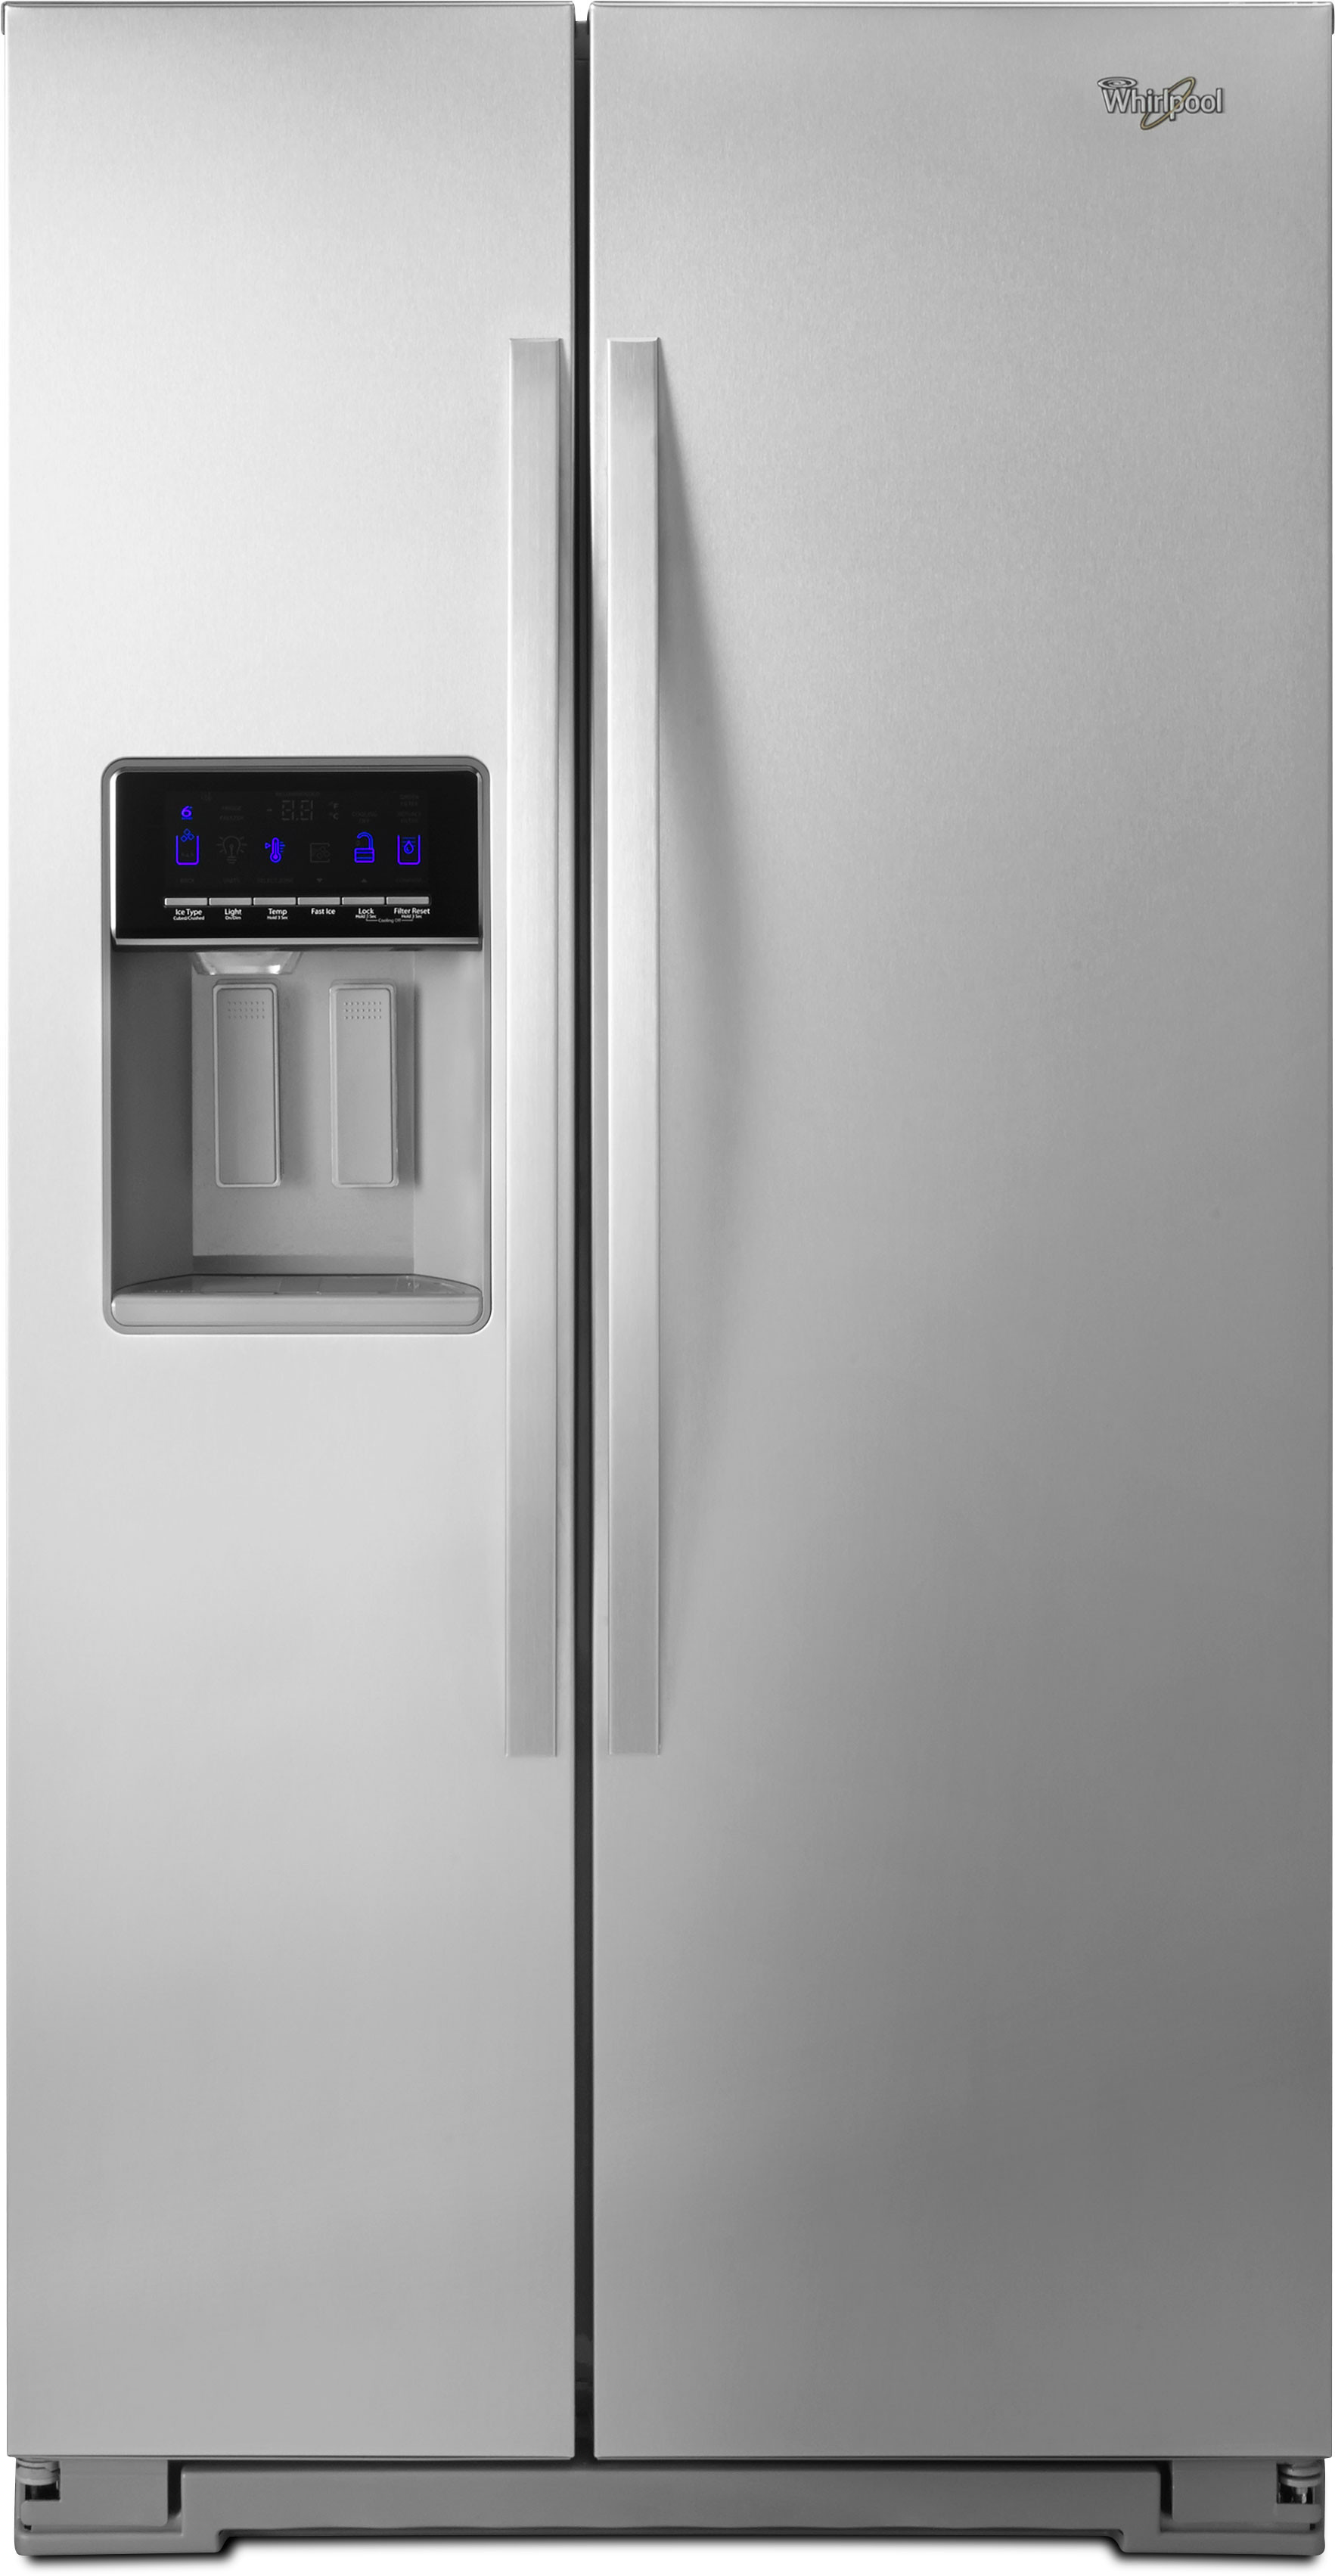 Side by side refrigerator no water dispenser - Side By Side Refrigerator No Water Dispenser 58